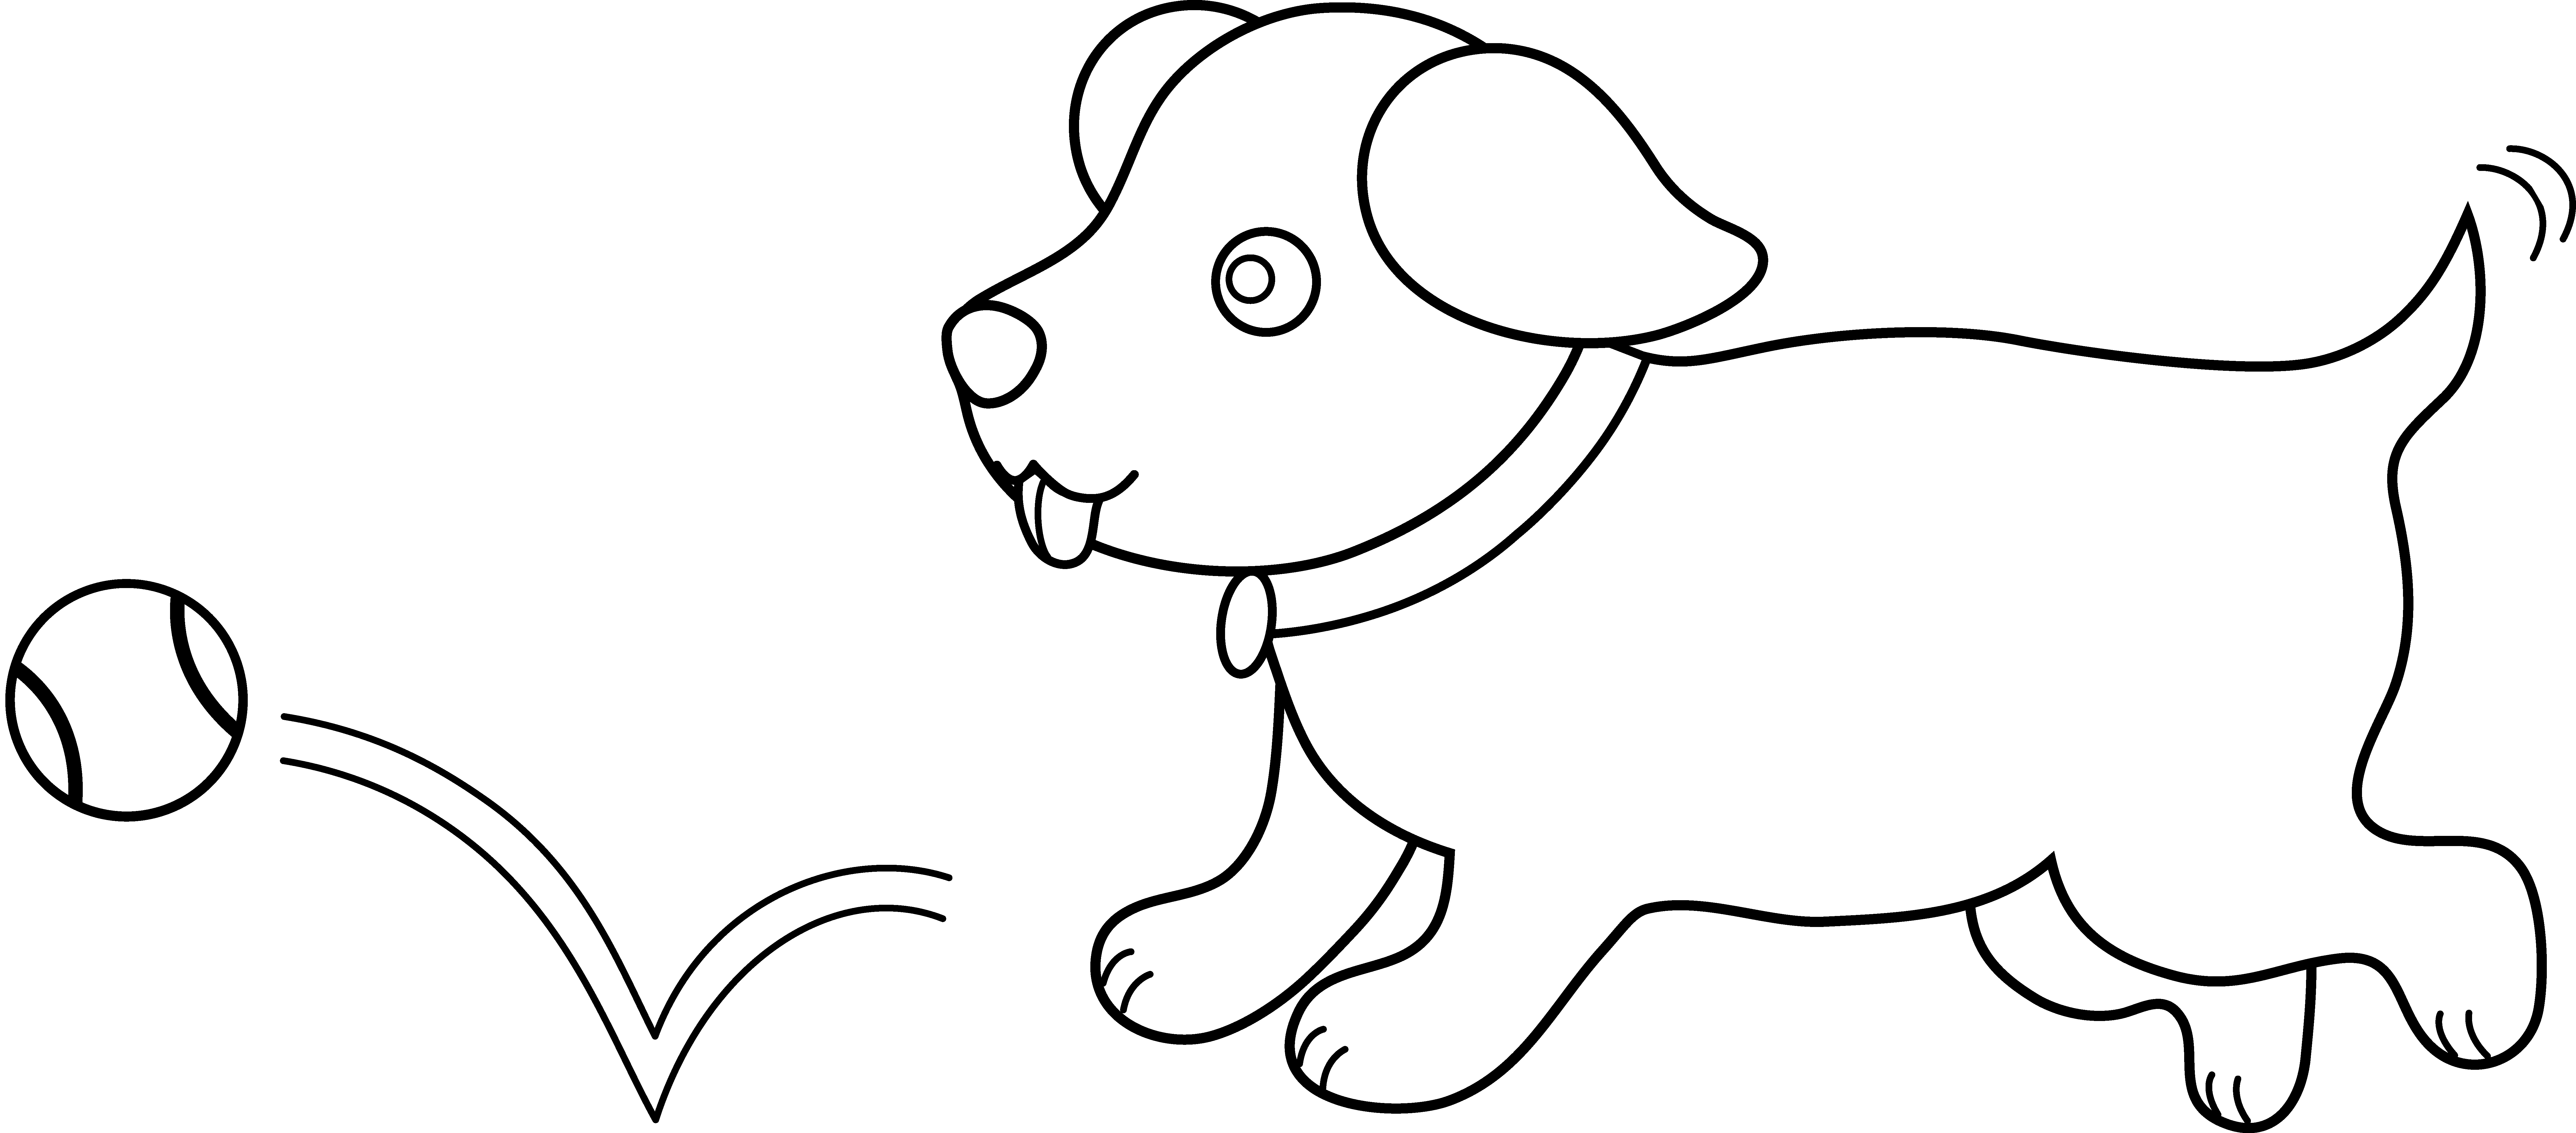 Line art of puppy. Doggy drawing little dog clipart stock